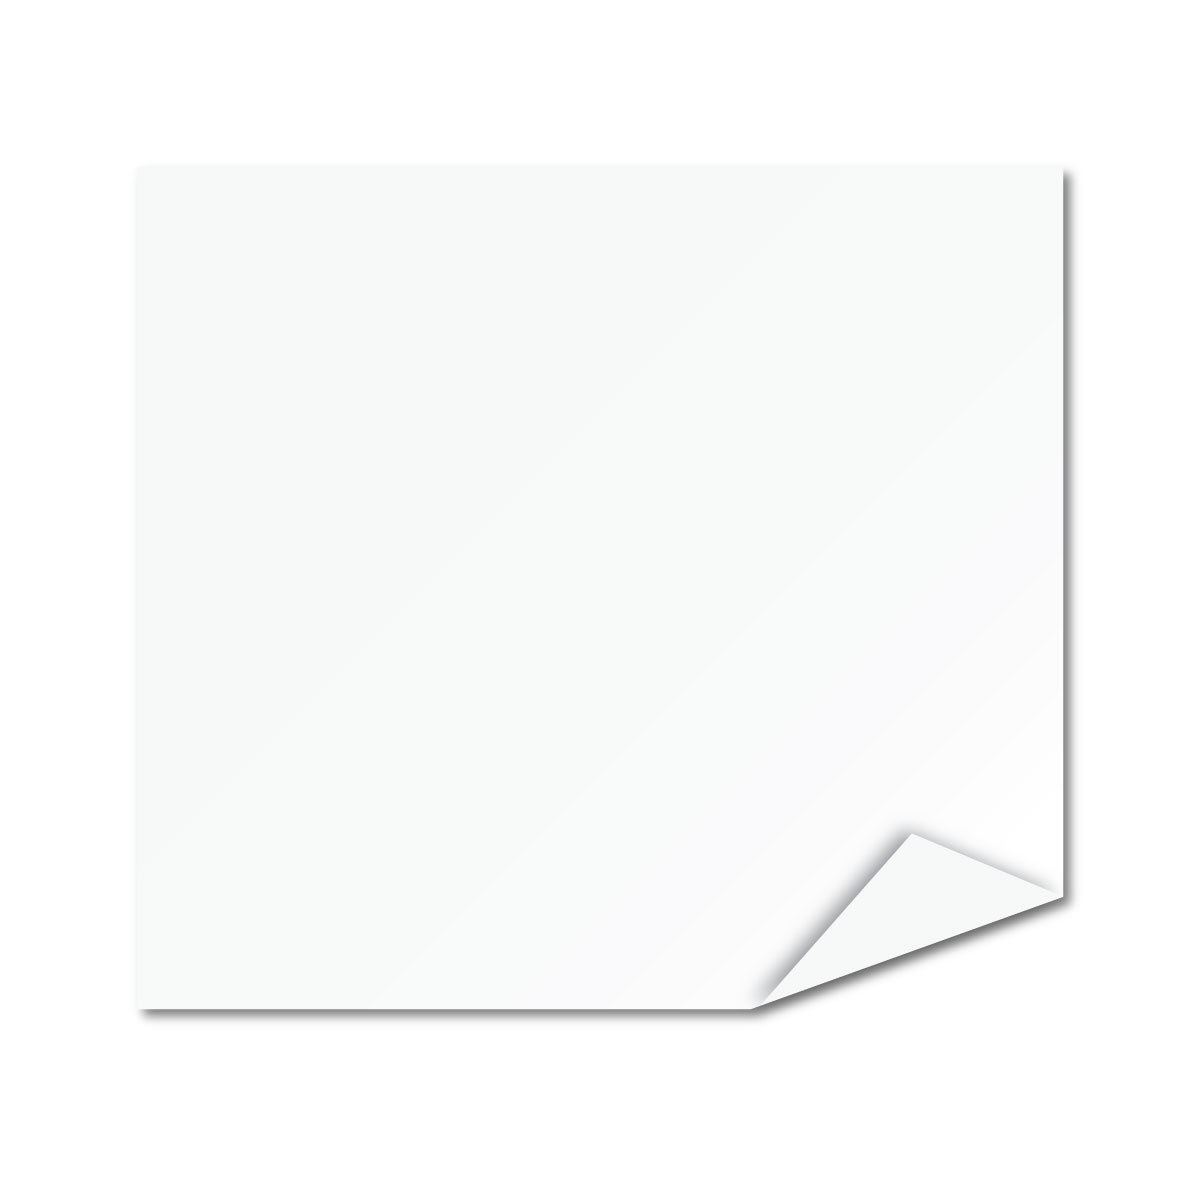 pvb 038mm vanceva cool white interleaved 2460mm